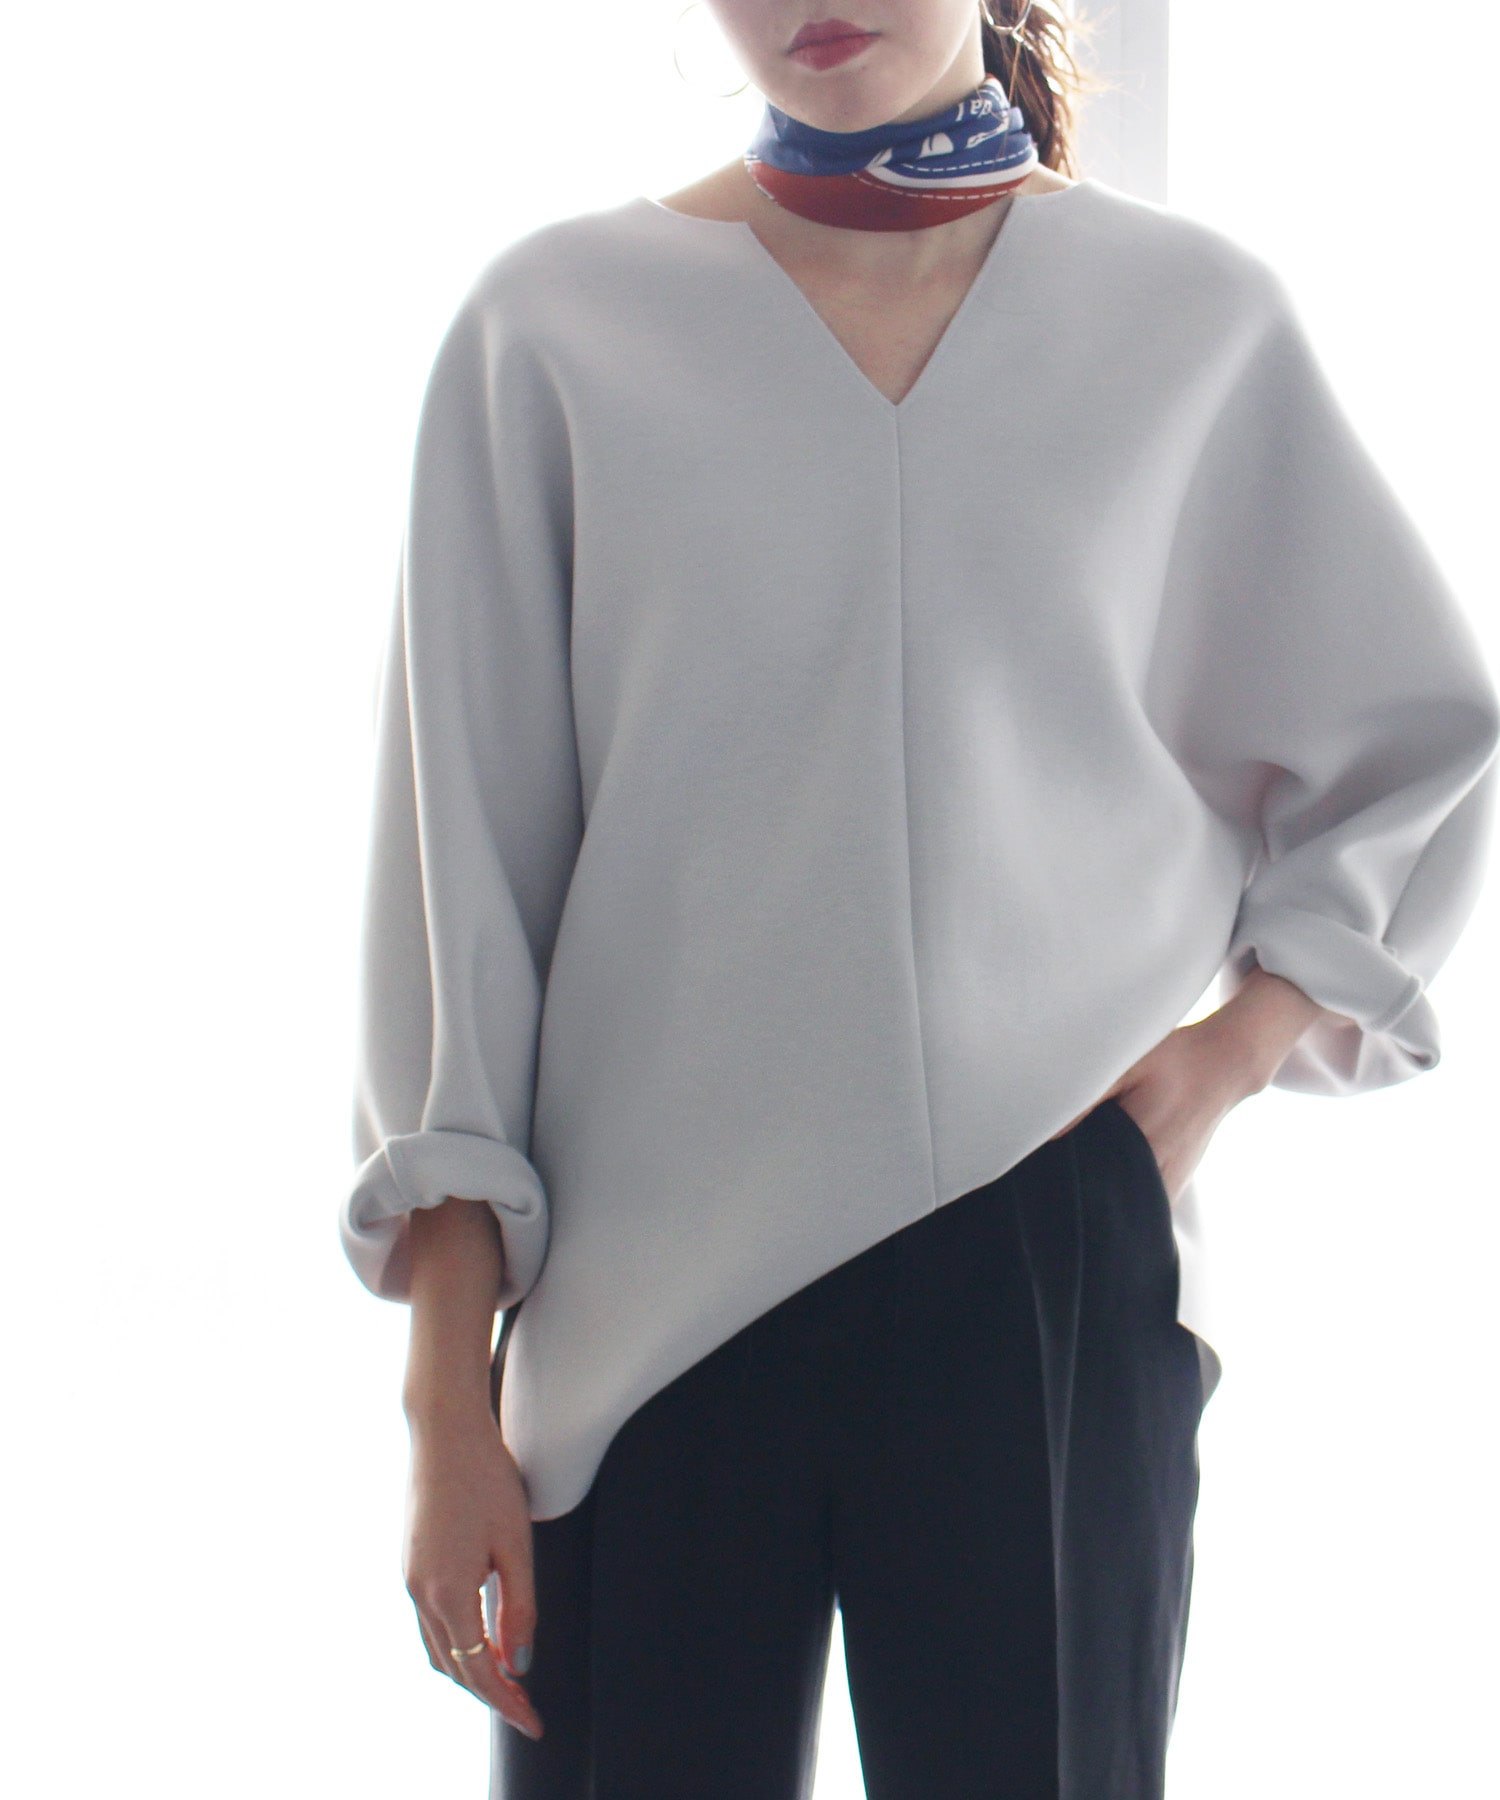 <B7>air cushion cardboard blouse